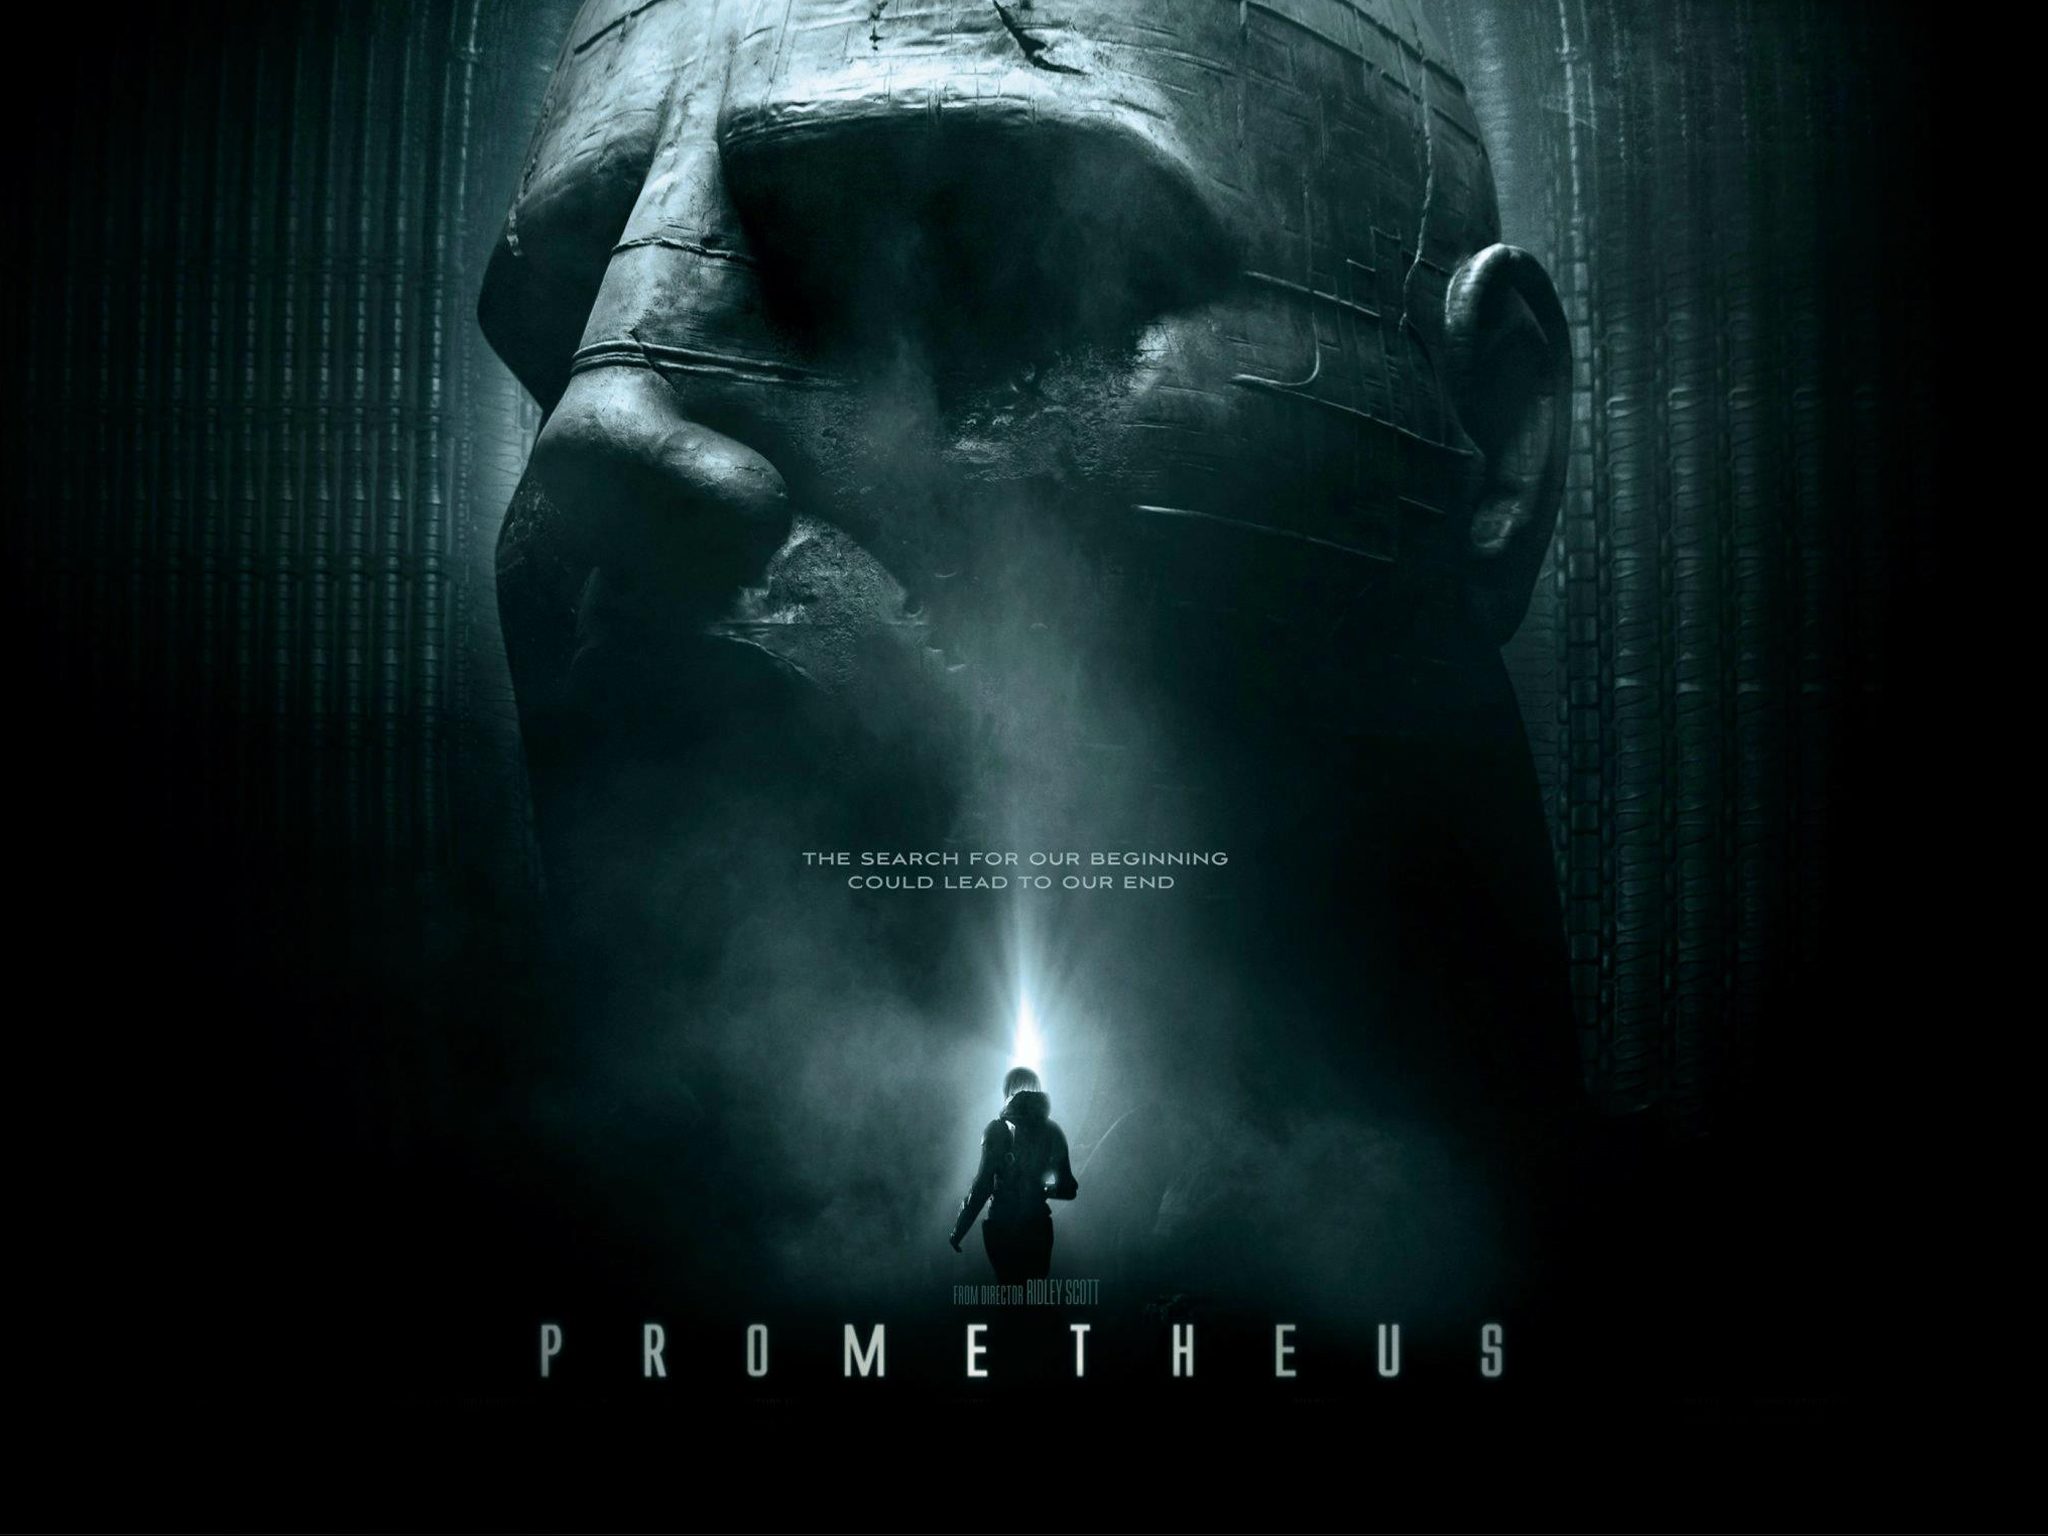 Prometheus Wallpaper Prometheus 2012 Film Wallpaper